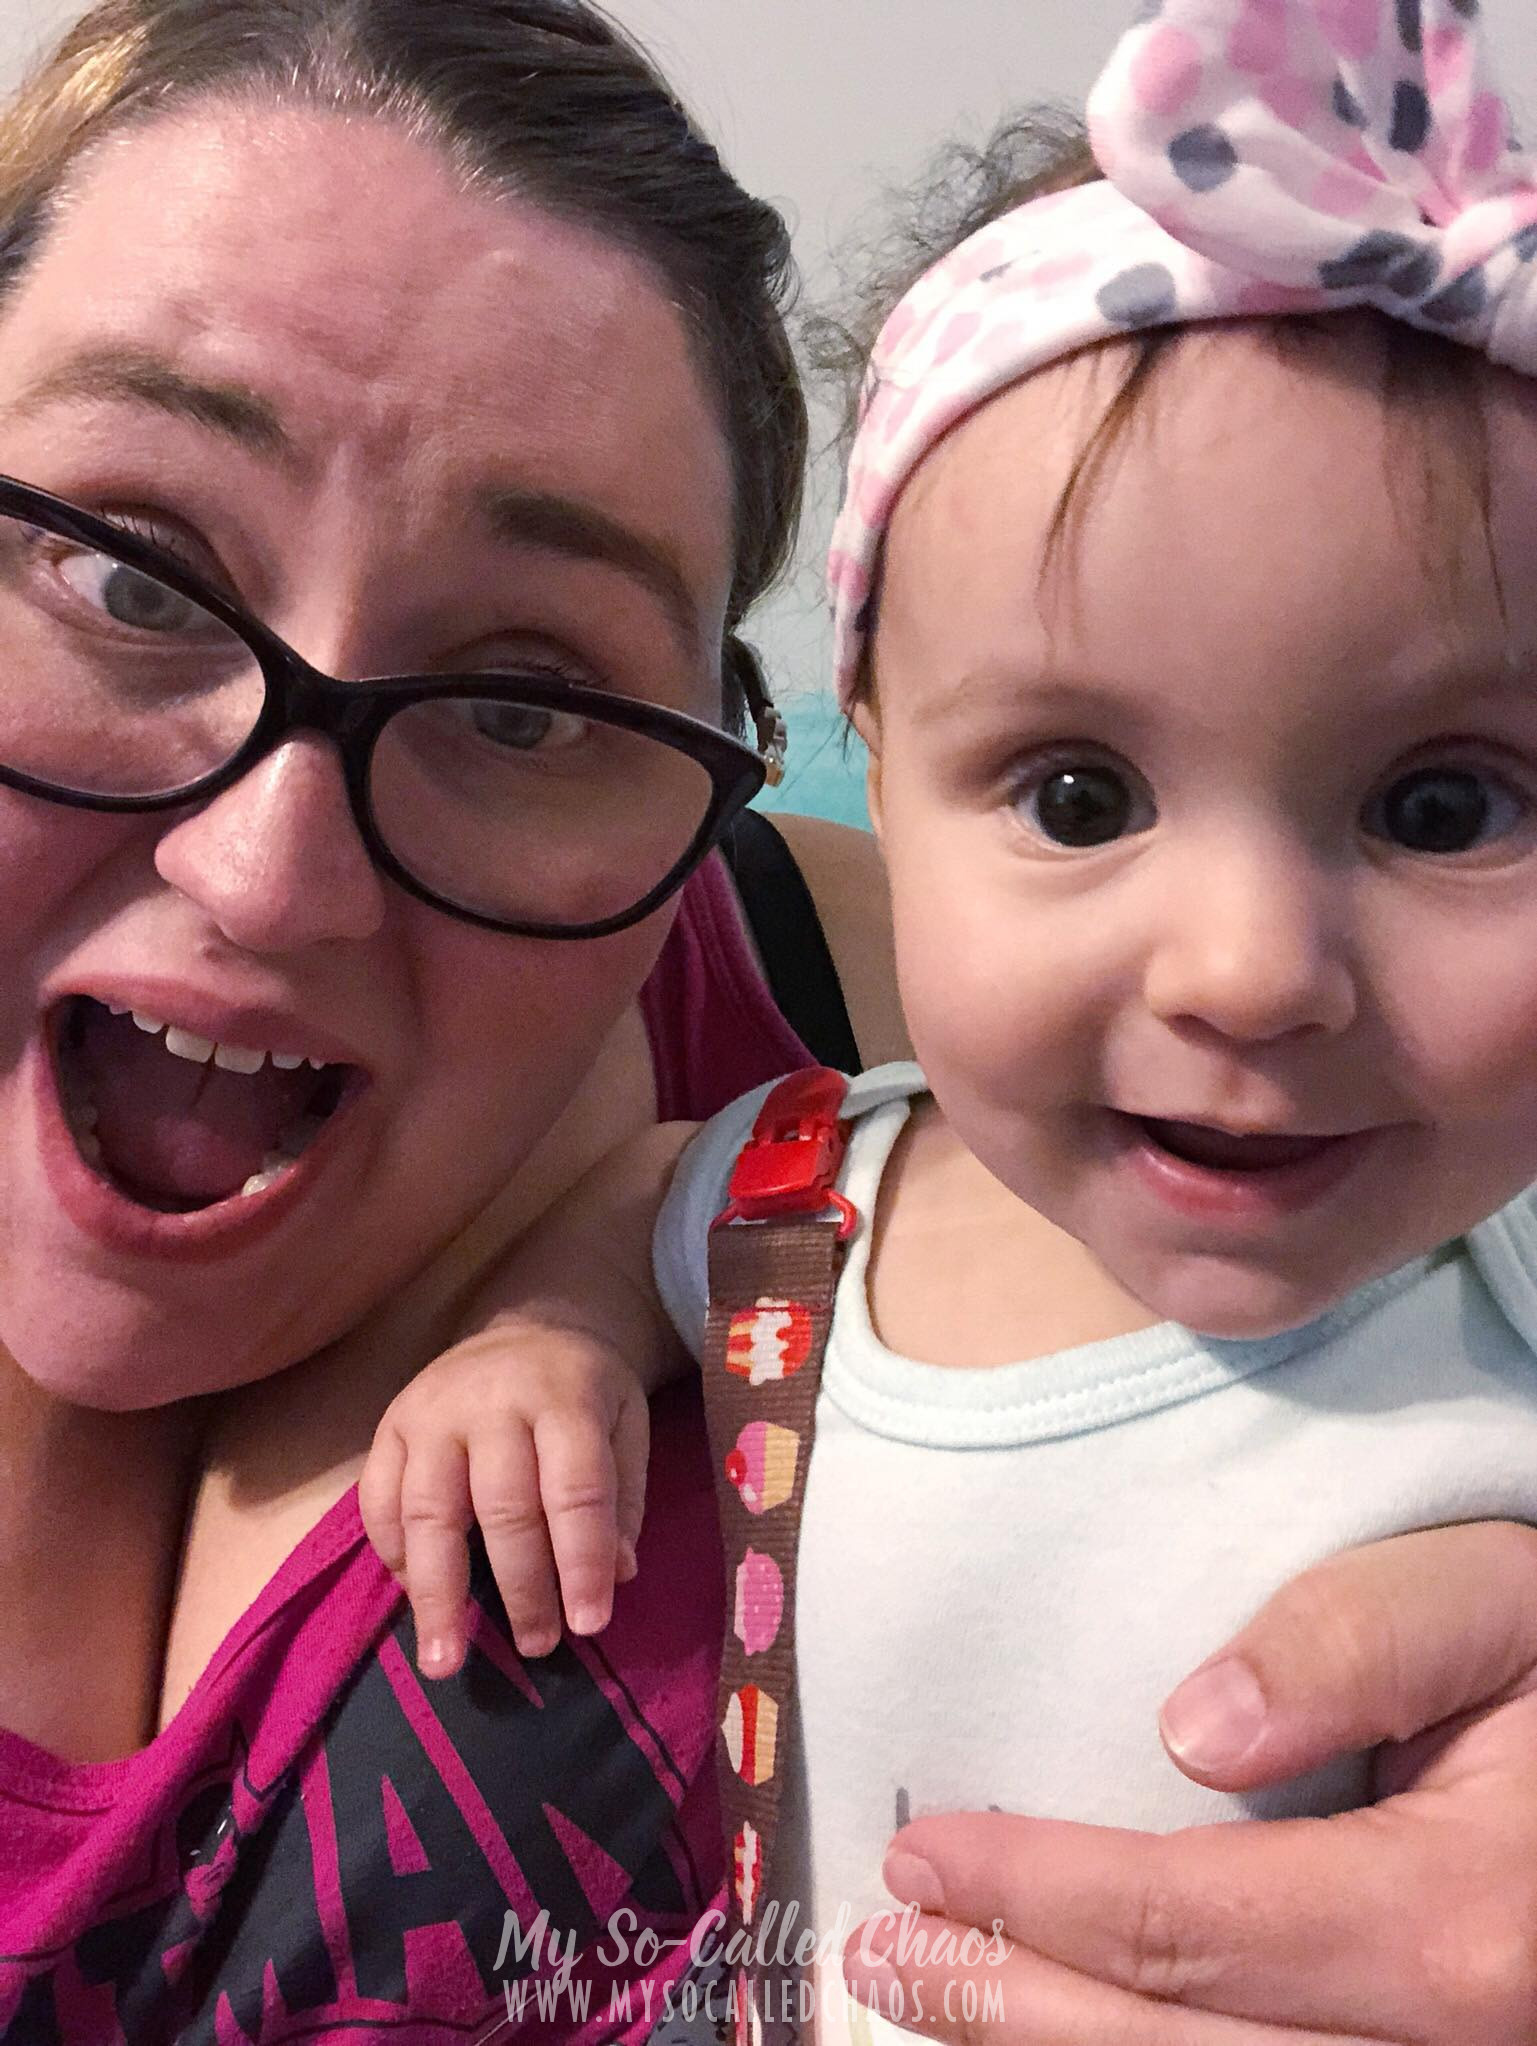 Adorable smiling baby and her momma with a surprised look on her face